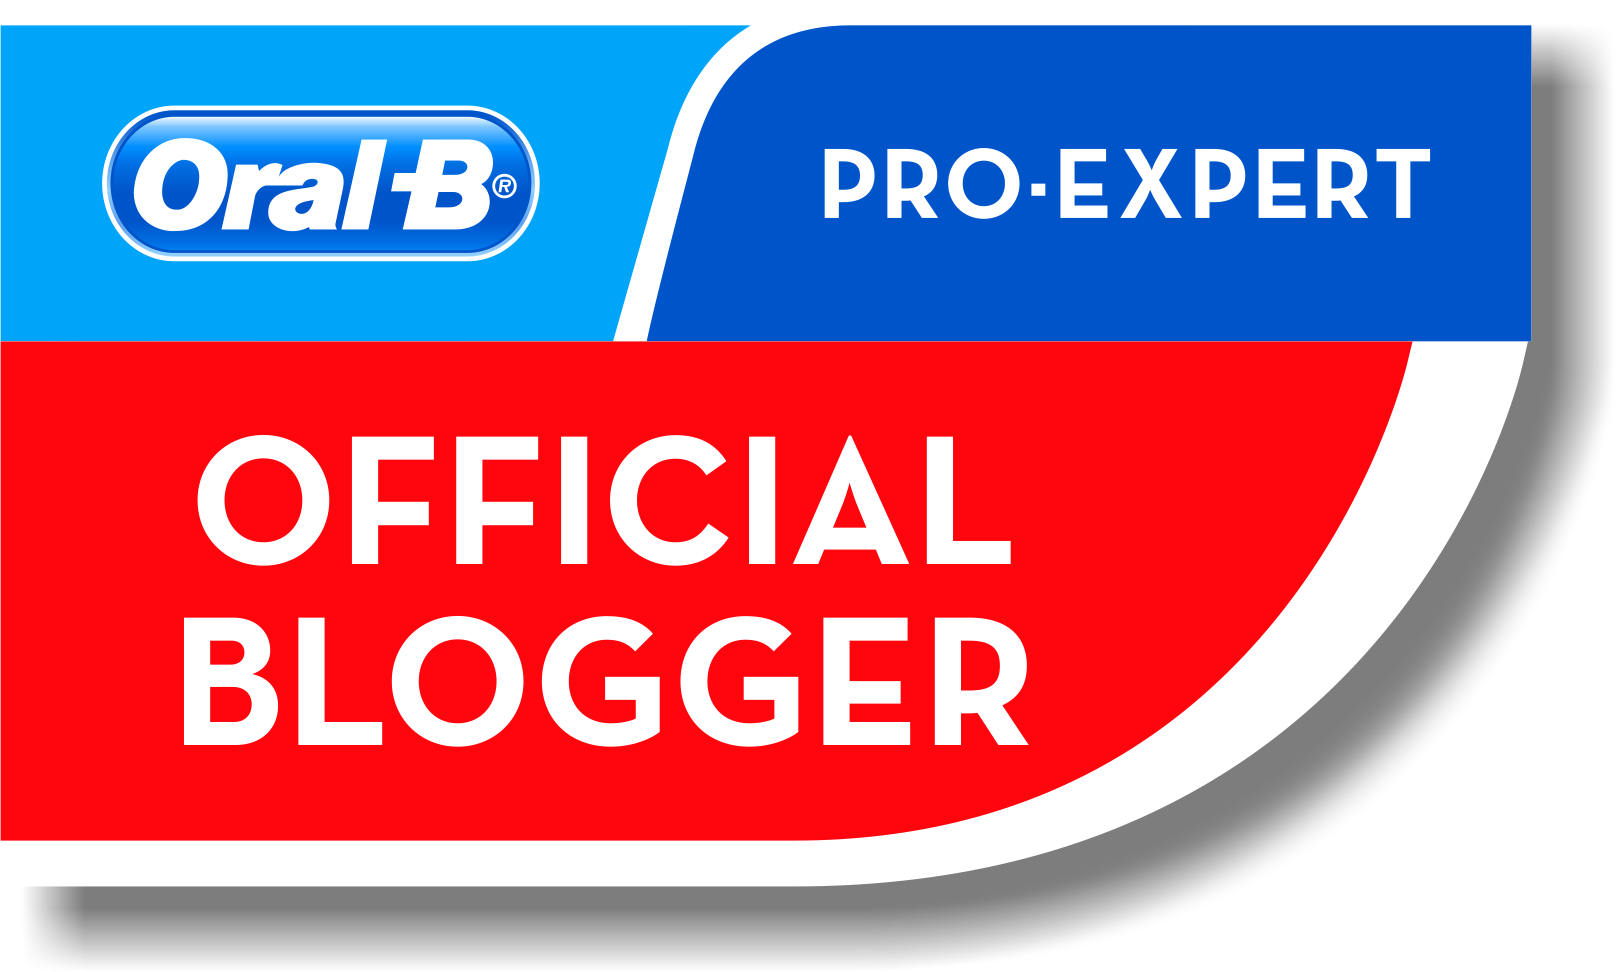 Oral B Pro Expert Blogger badge – selected